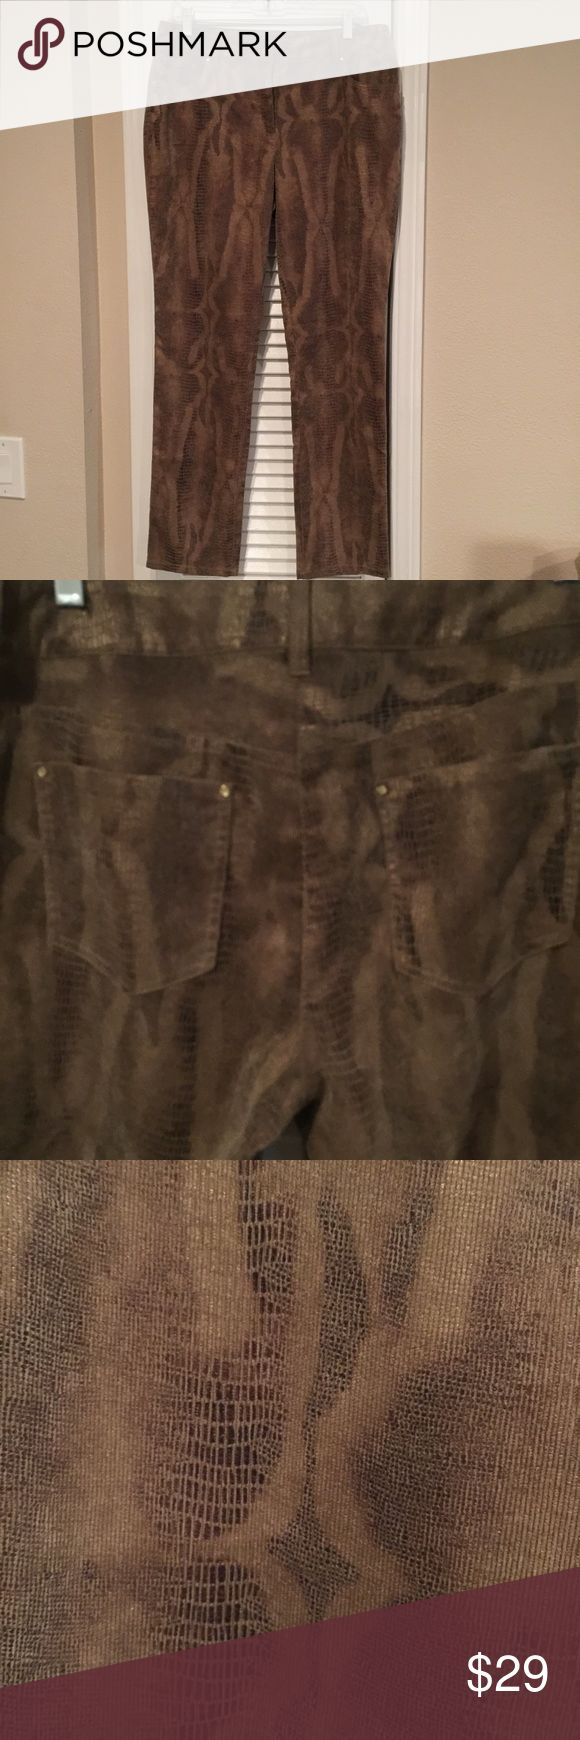 """CHICOS CURVY SNAKE PRINT PANTS CHICOS CURVY SNAKE PRINT PANTS. Approx 17"""" waist and 30"""" inseam.  Size 1.5 (in CHICOS that is a 12) Chico's Pants"""